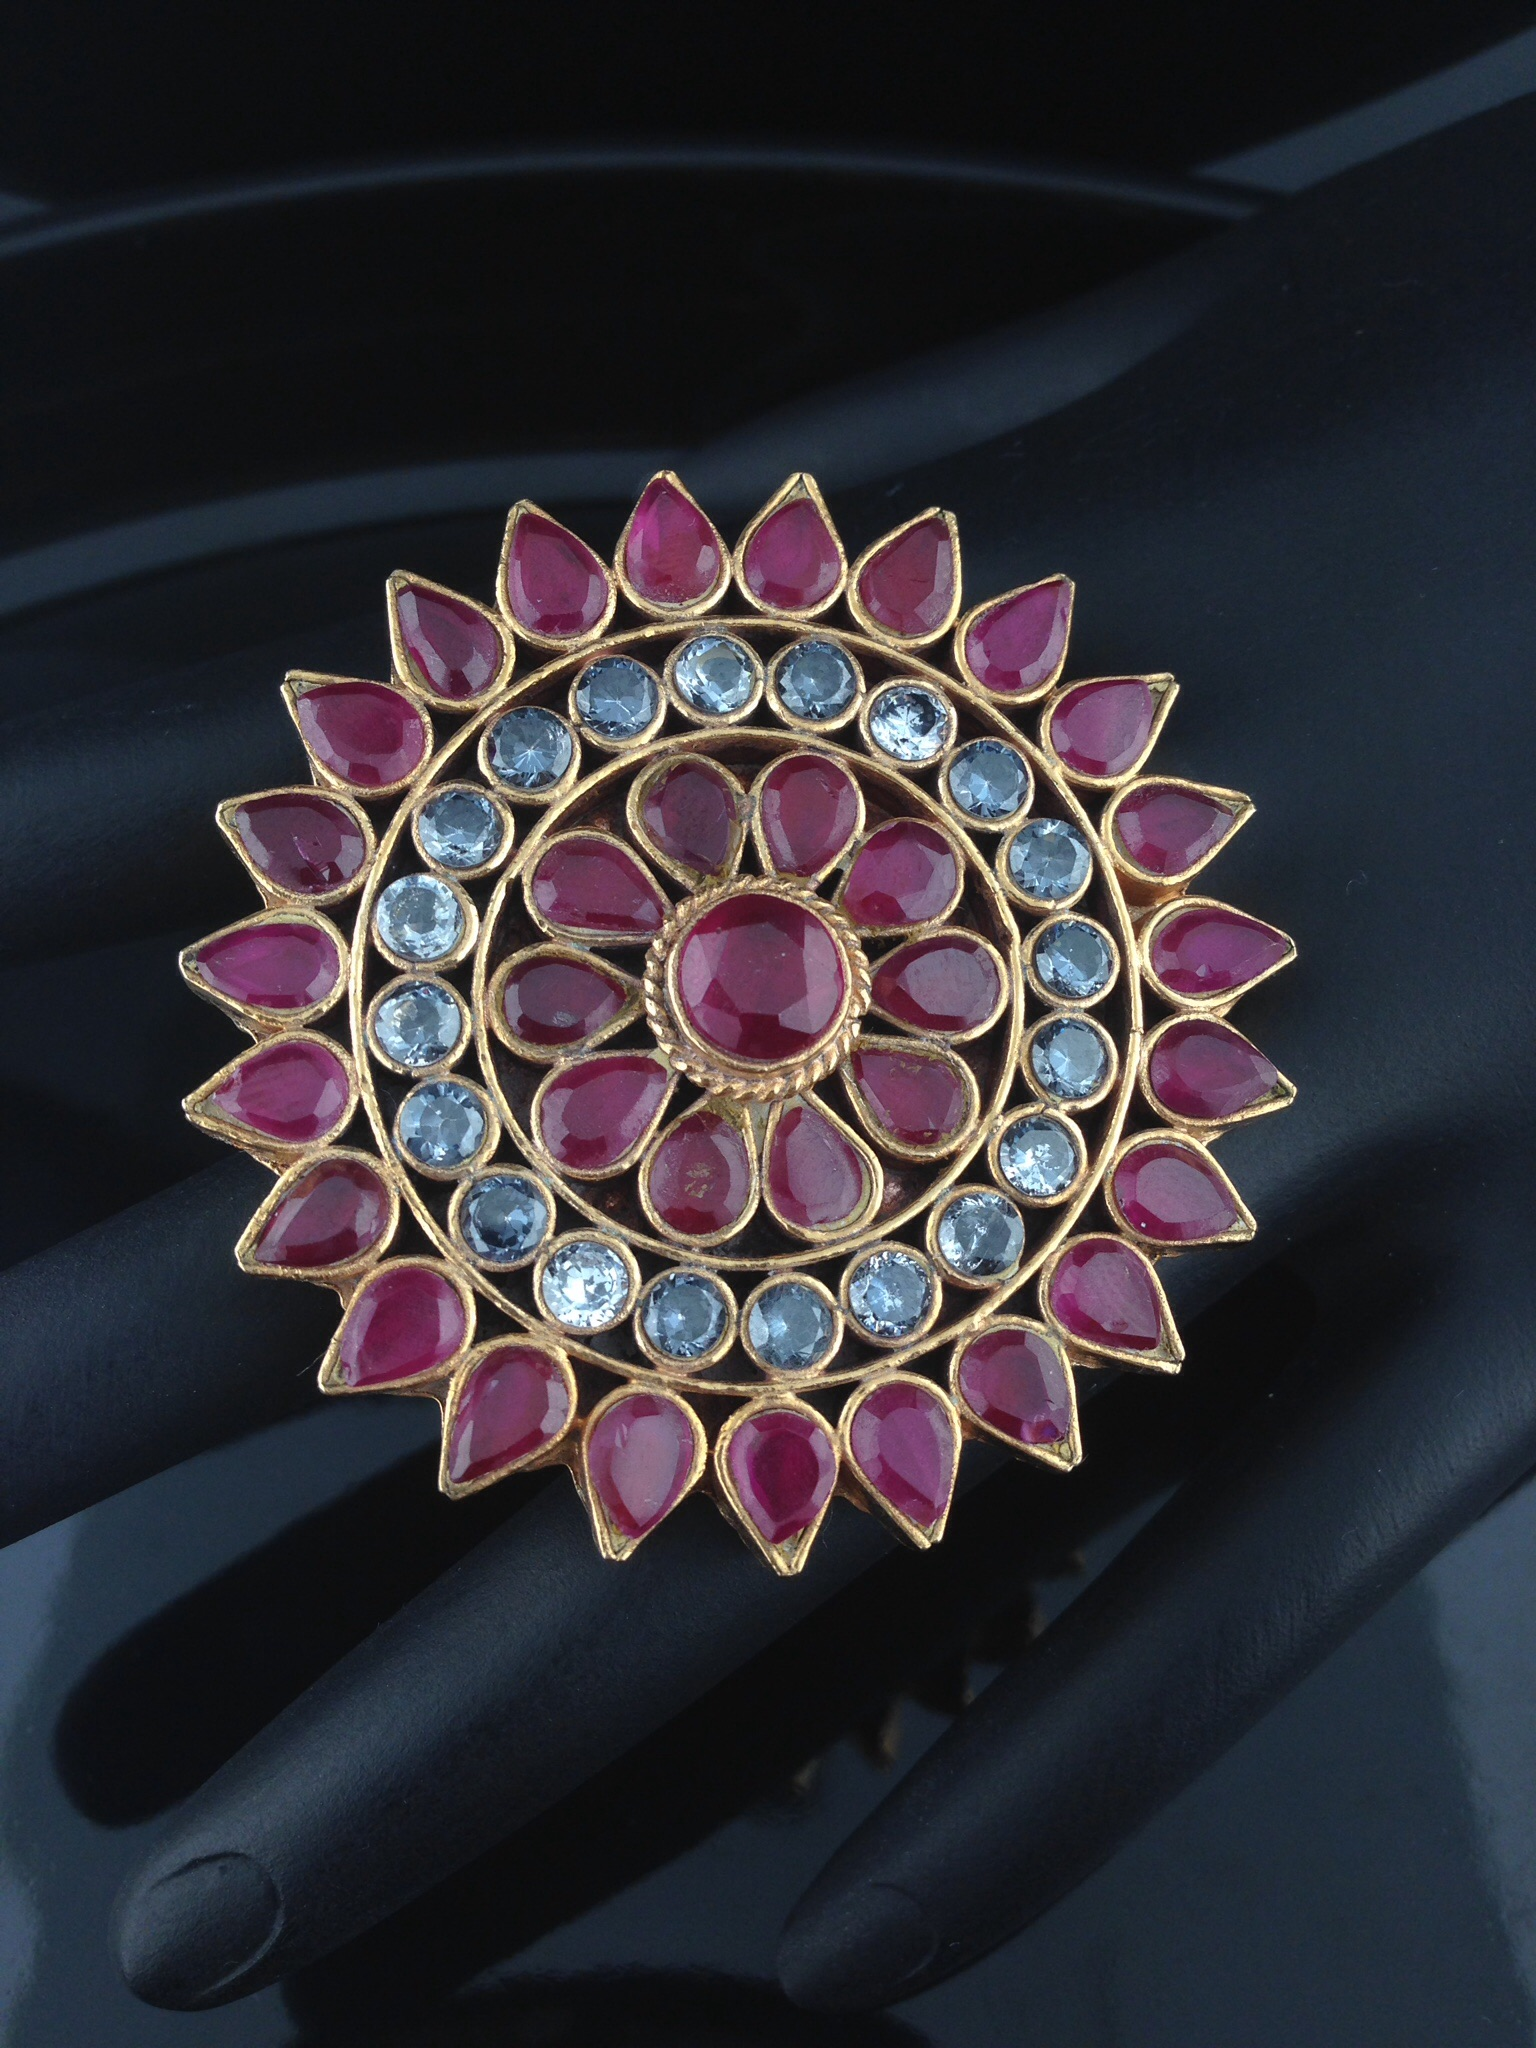 Kundan Rings with Rubies And Crystals